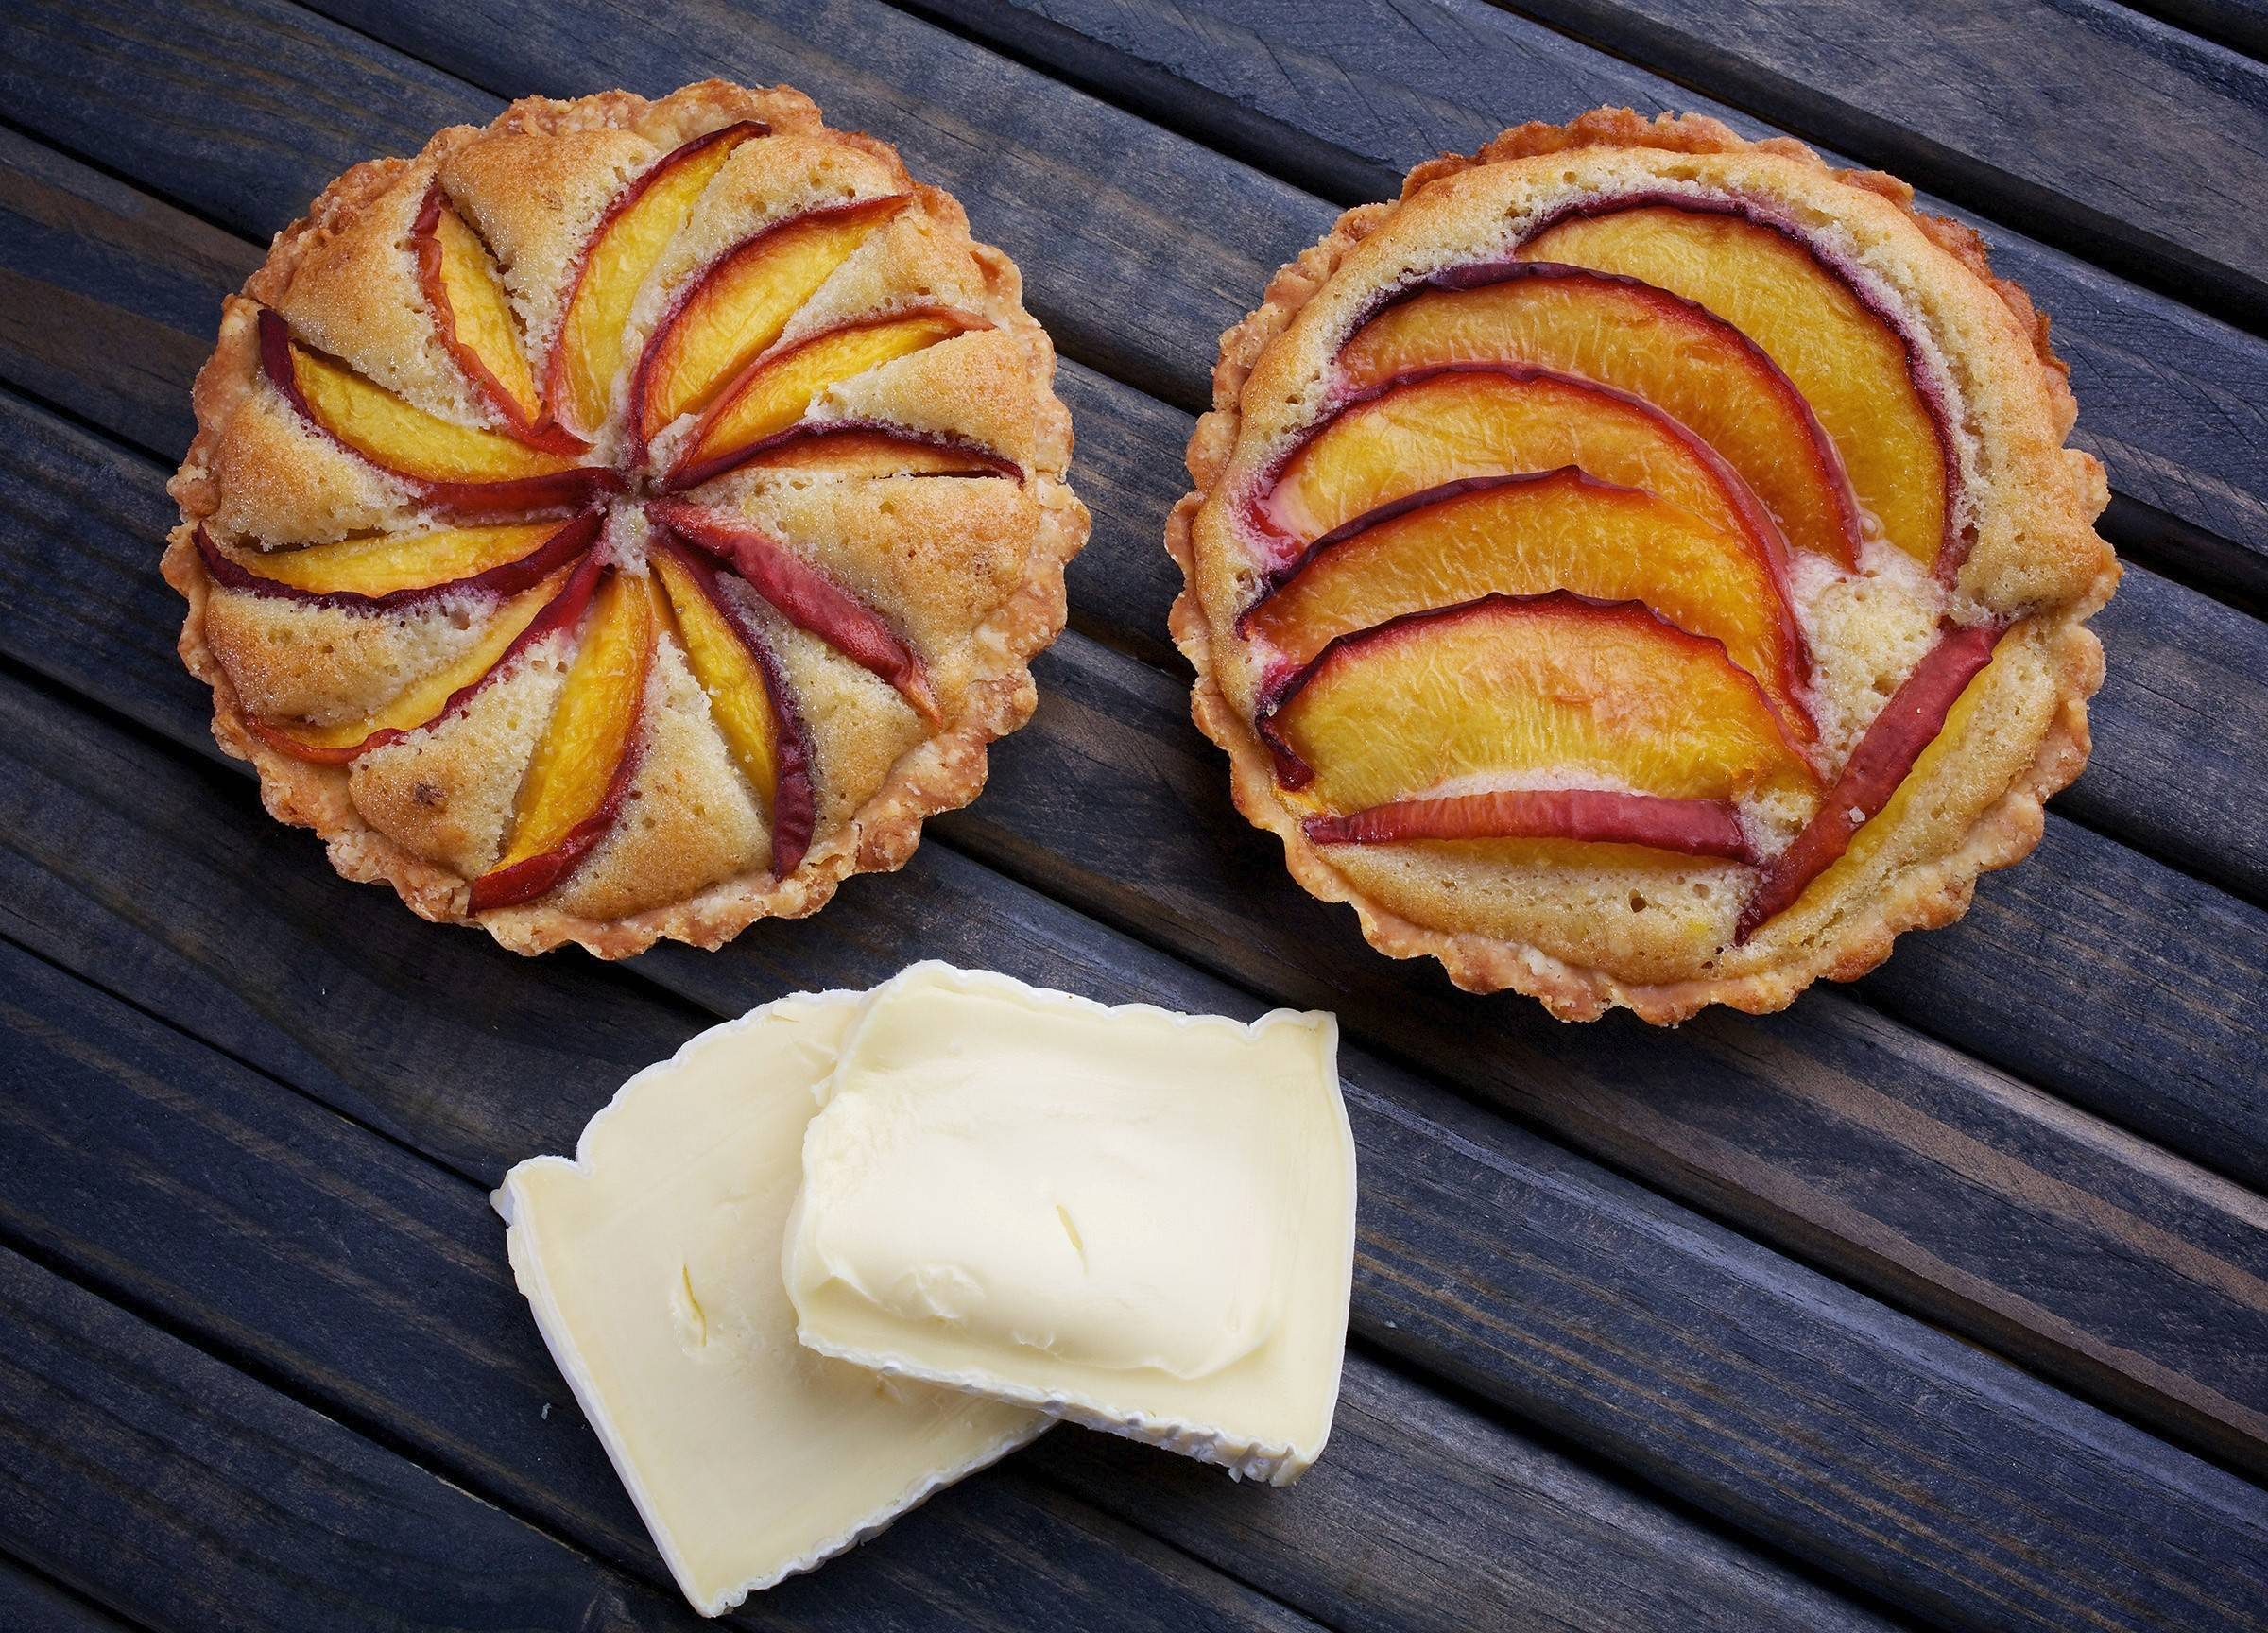 Peach and Pine Nut Tarts pair well with a triple-cream cheese like Explorateur.